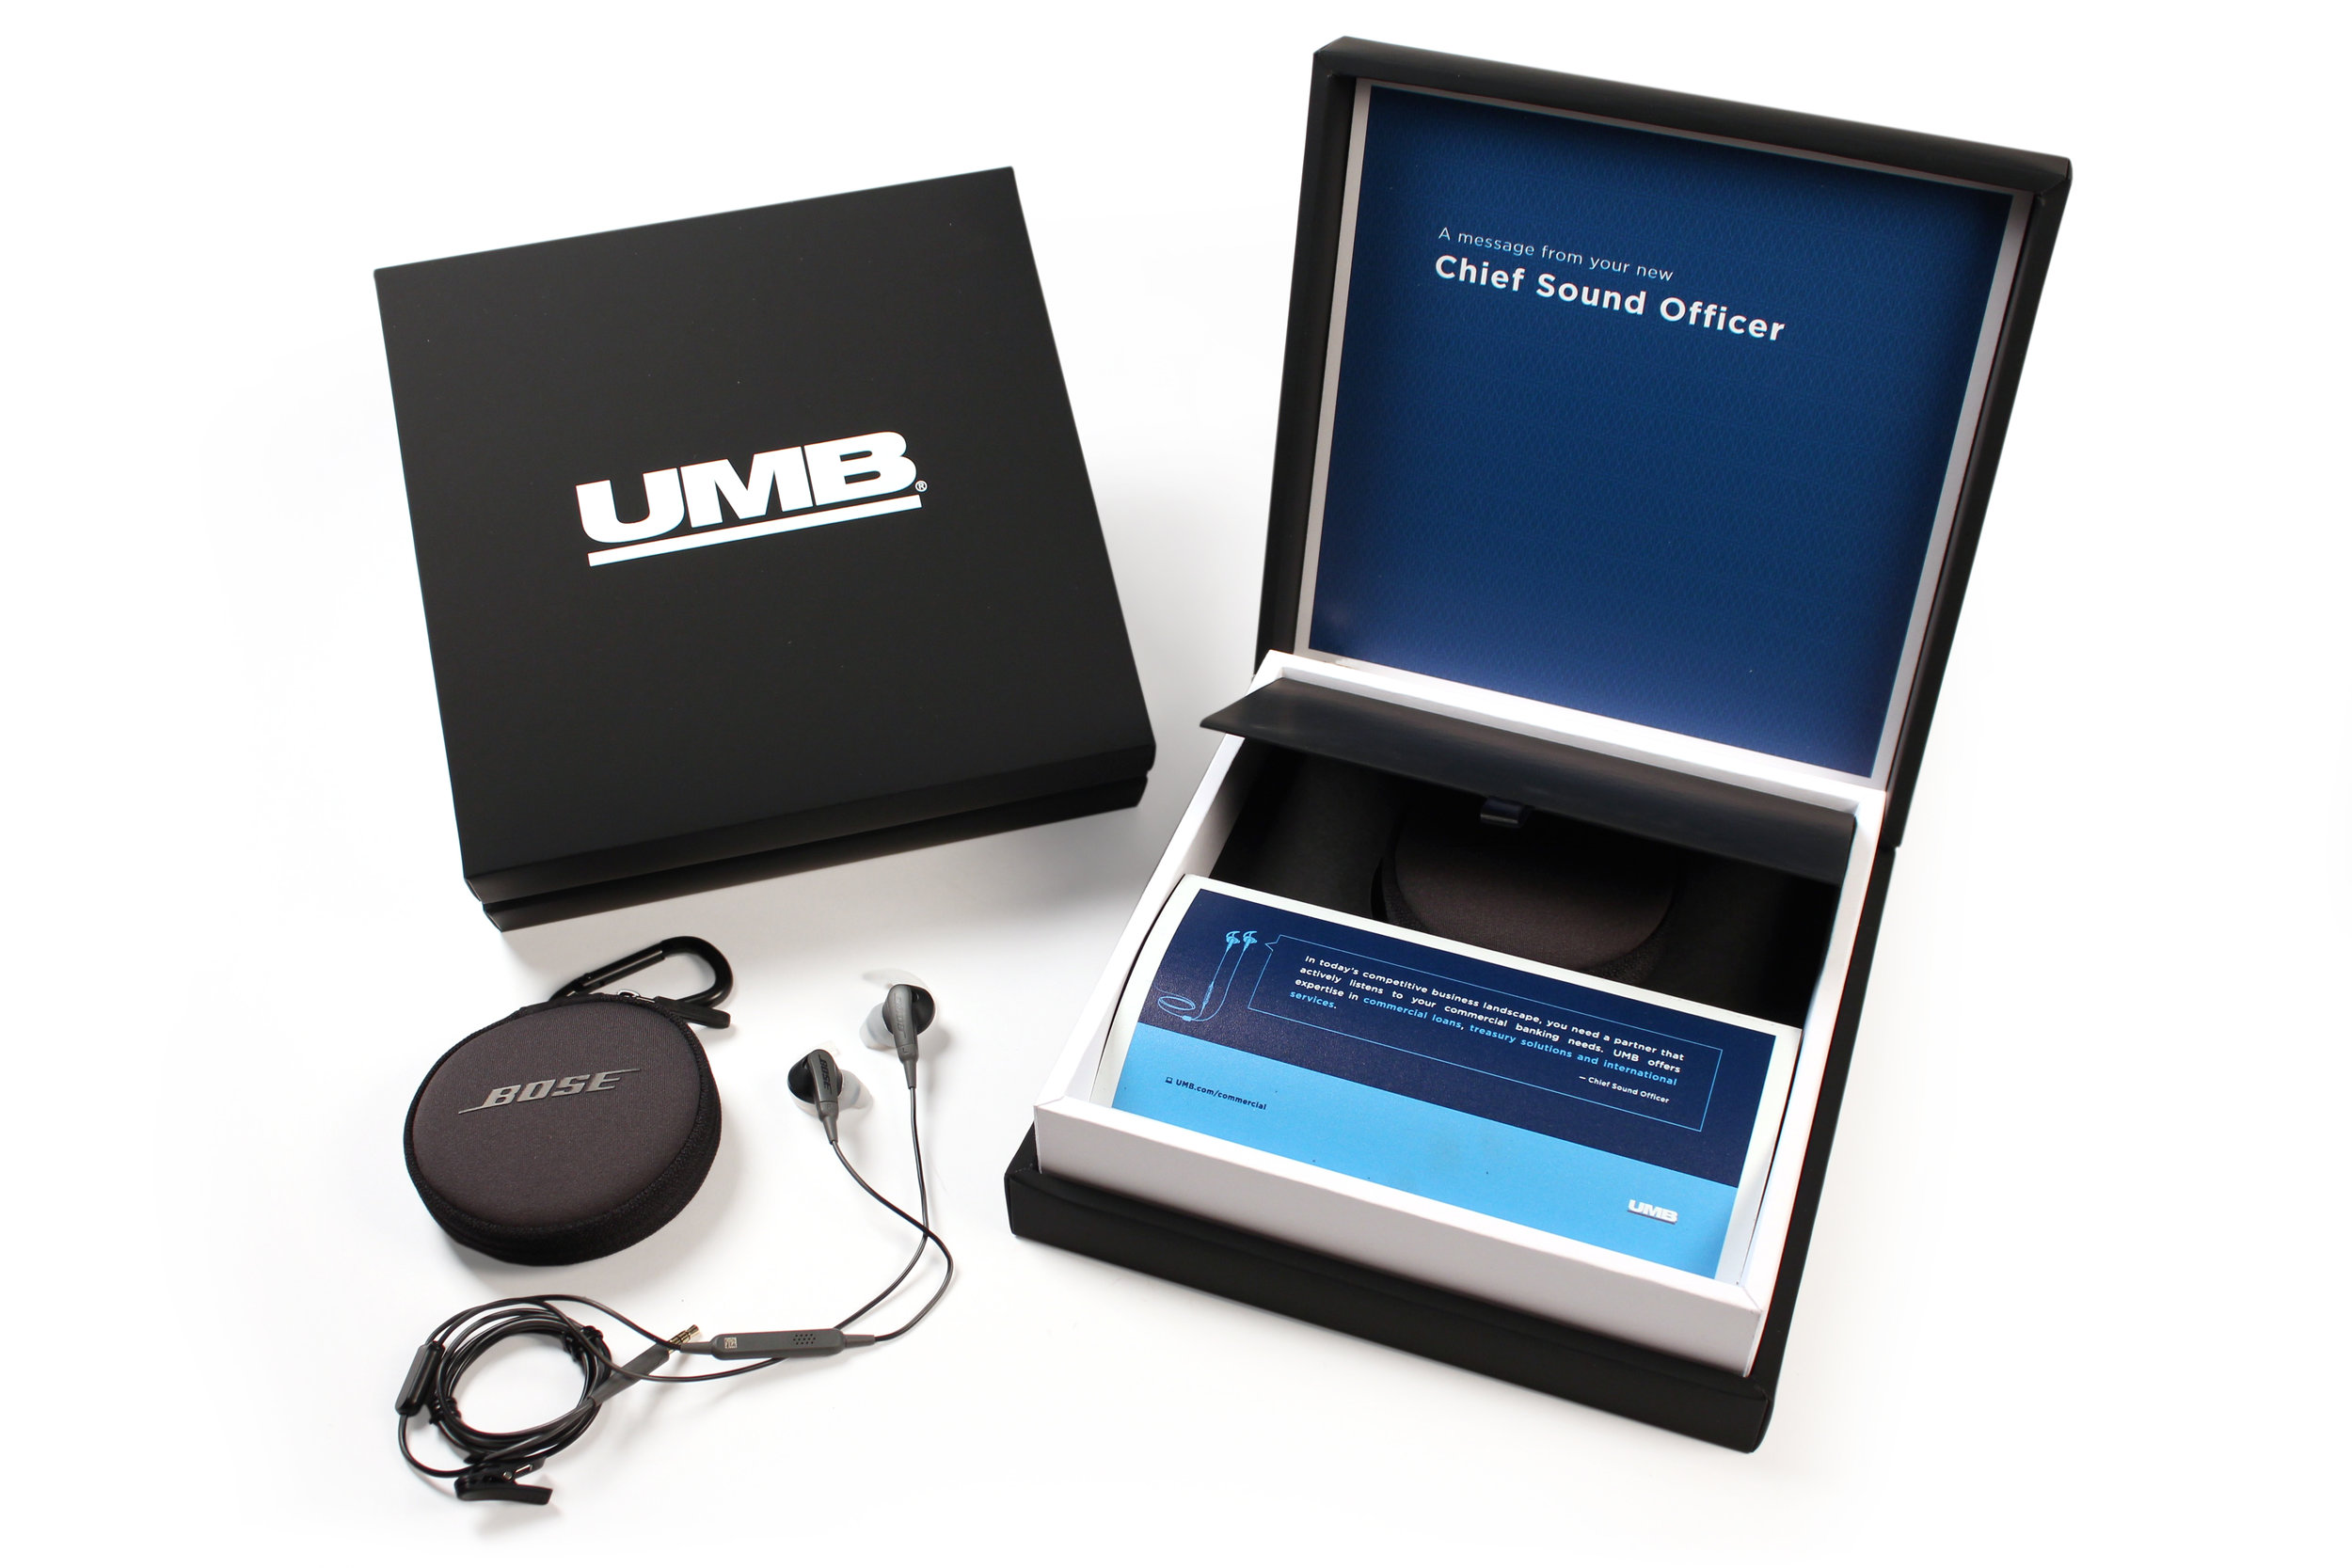 UMB-Bose-Box-hires.jpg